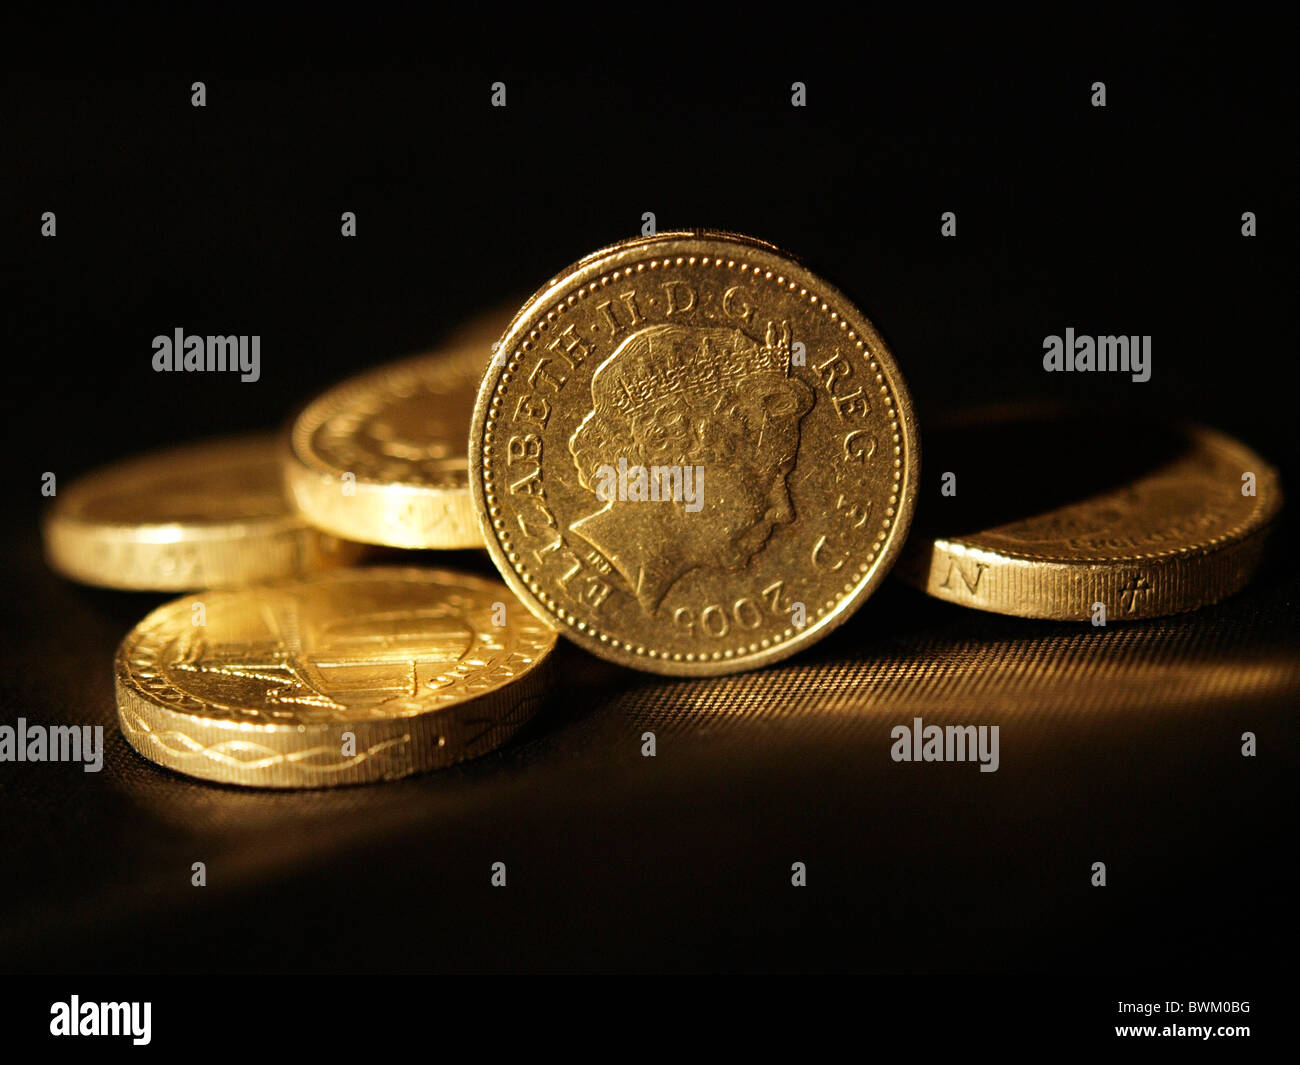 British pound coin with soft lighting stood up amongst other pound coins - Stock Image